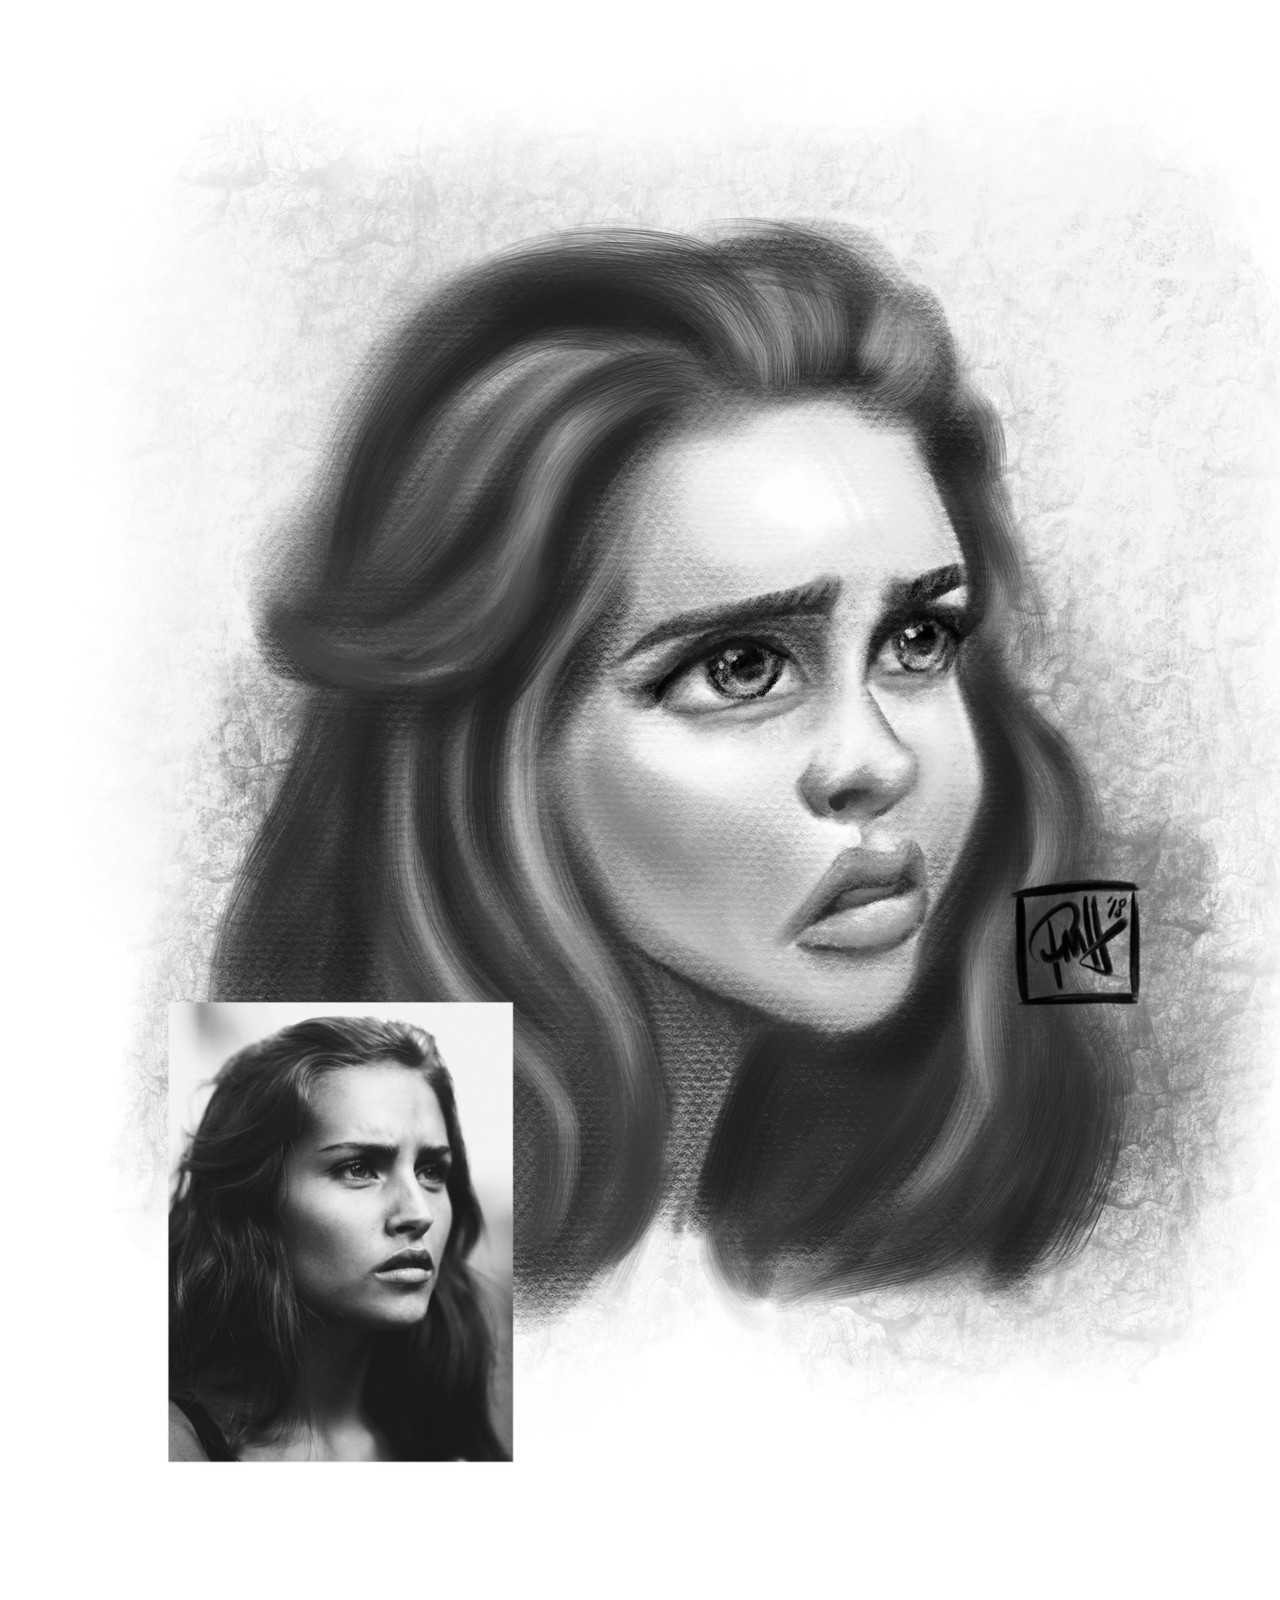 Expressions Study 6